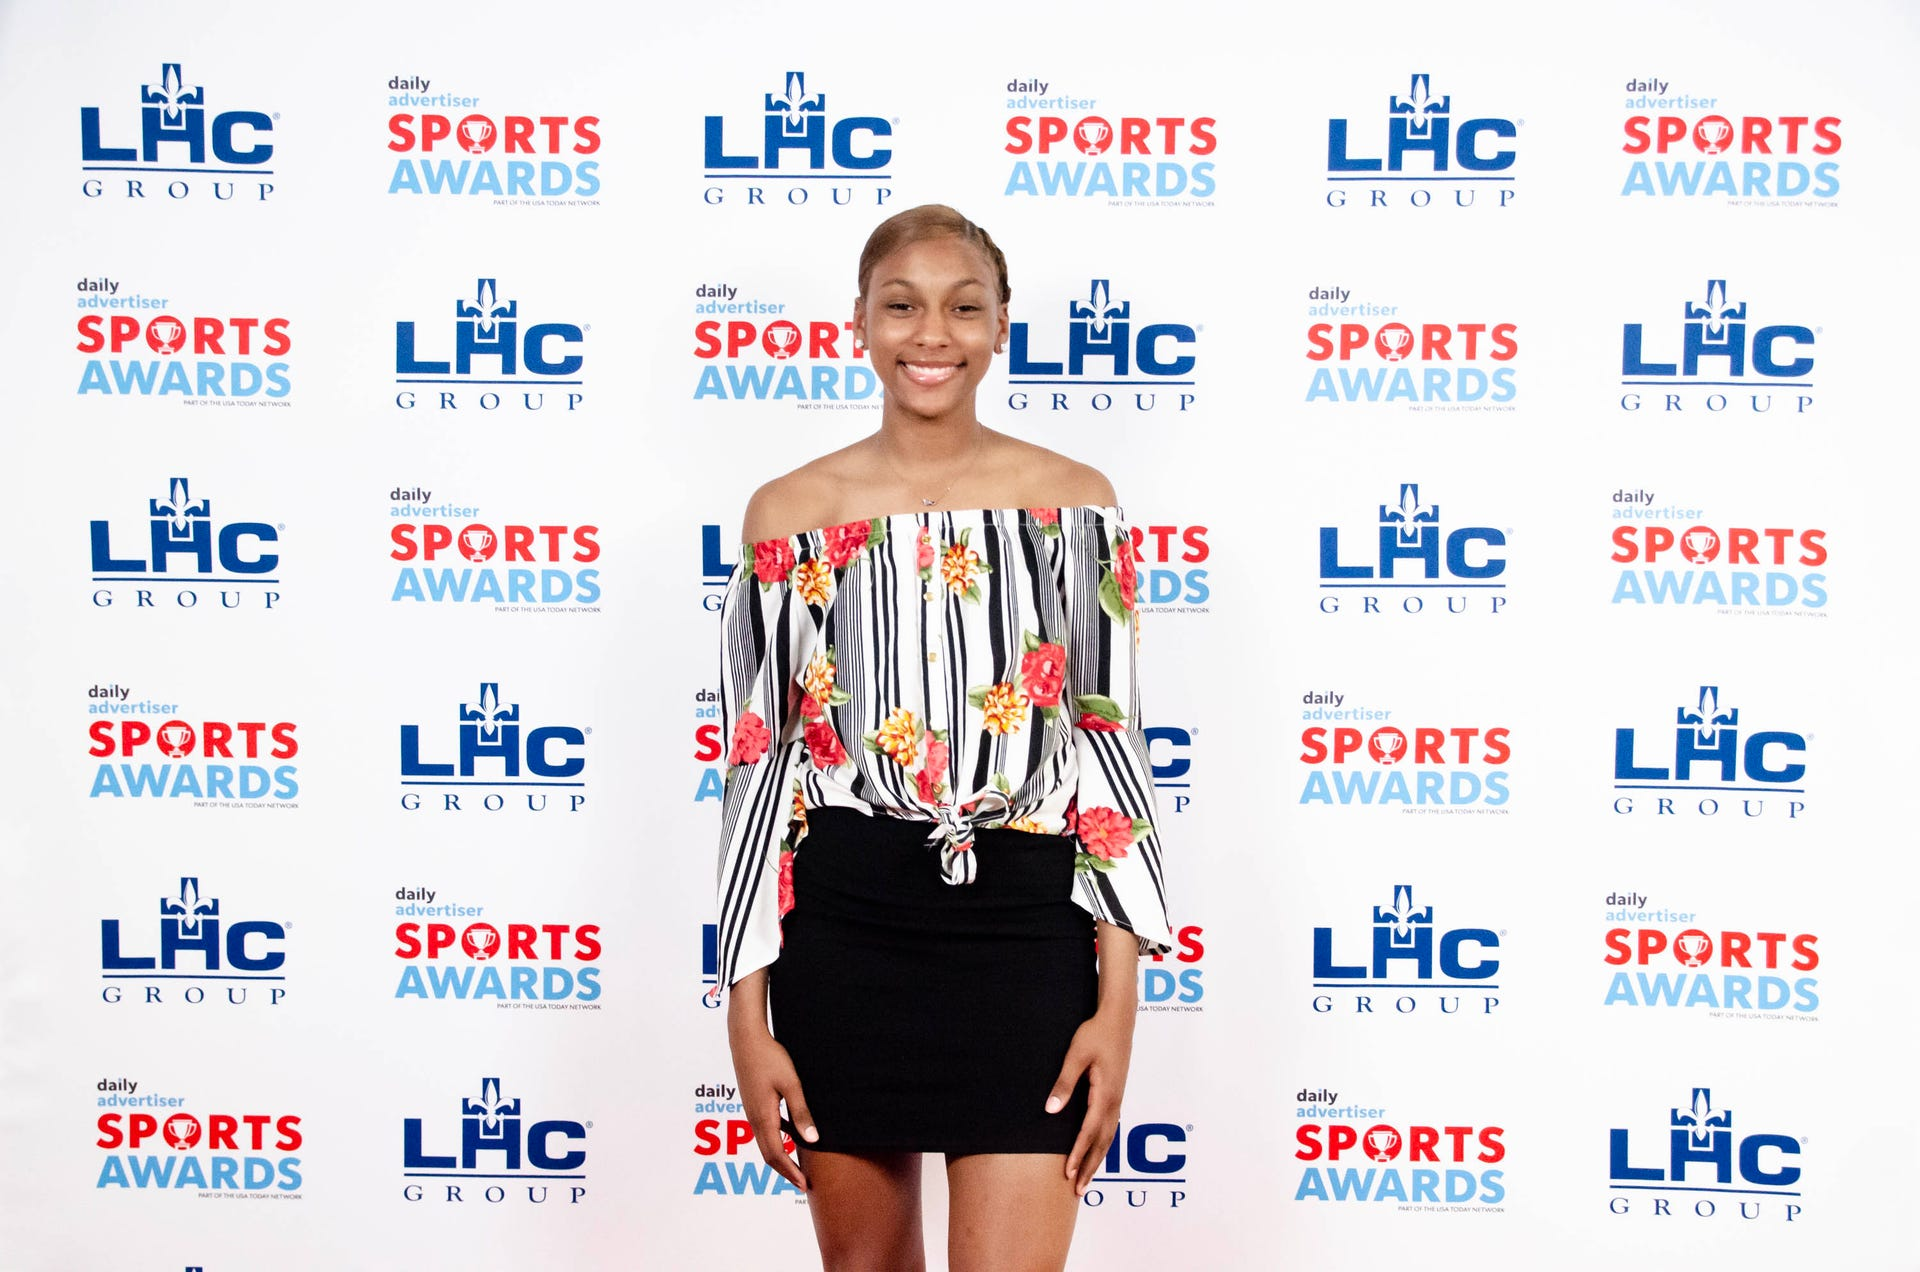 Sports Awards: Athletes on the Red Carpet